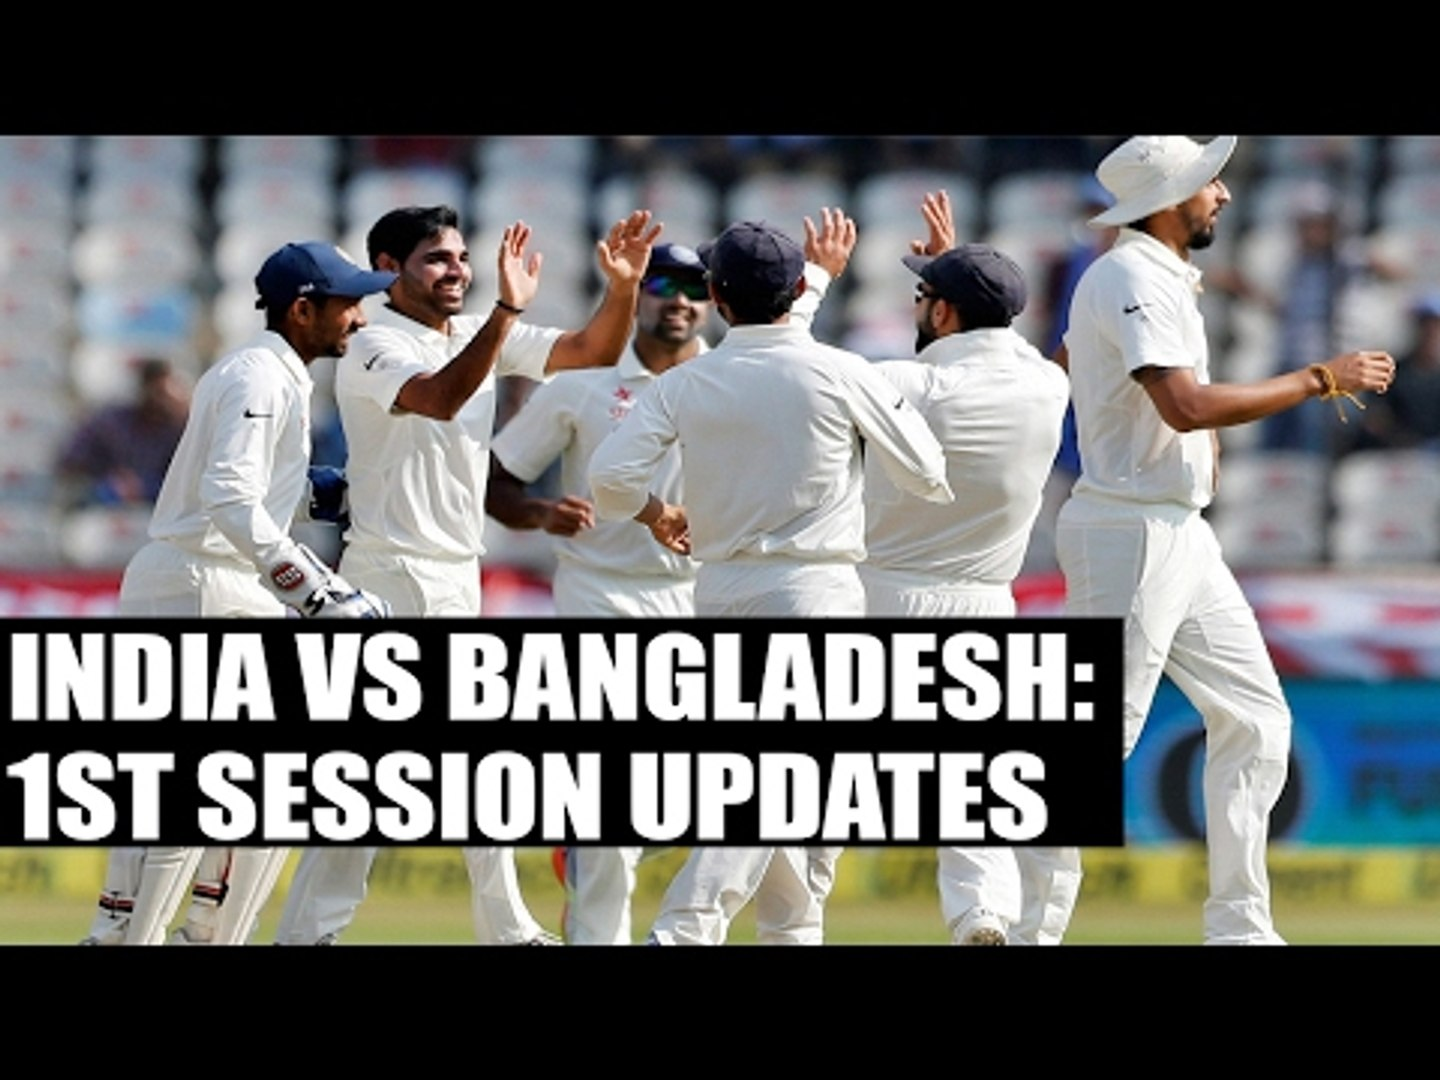 India vs Bangladesh: India dominate the first session | Oneindia News